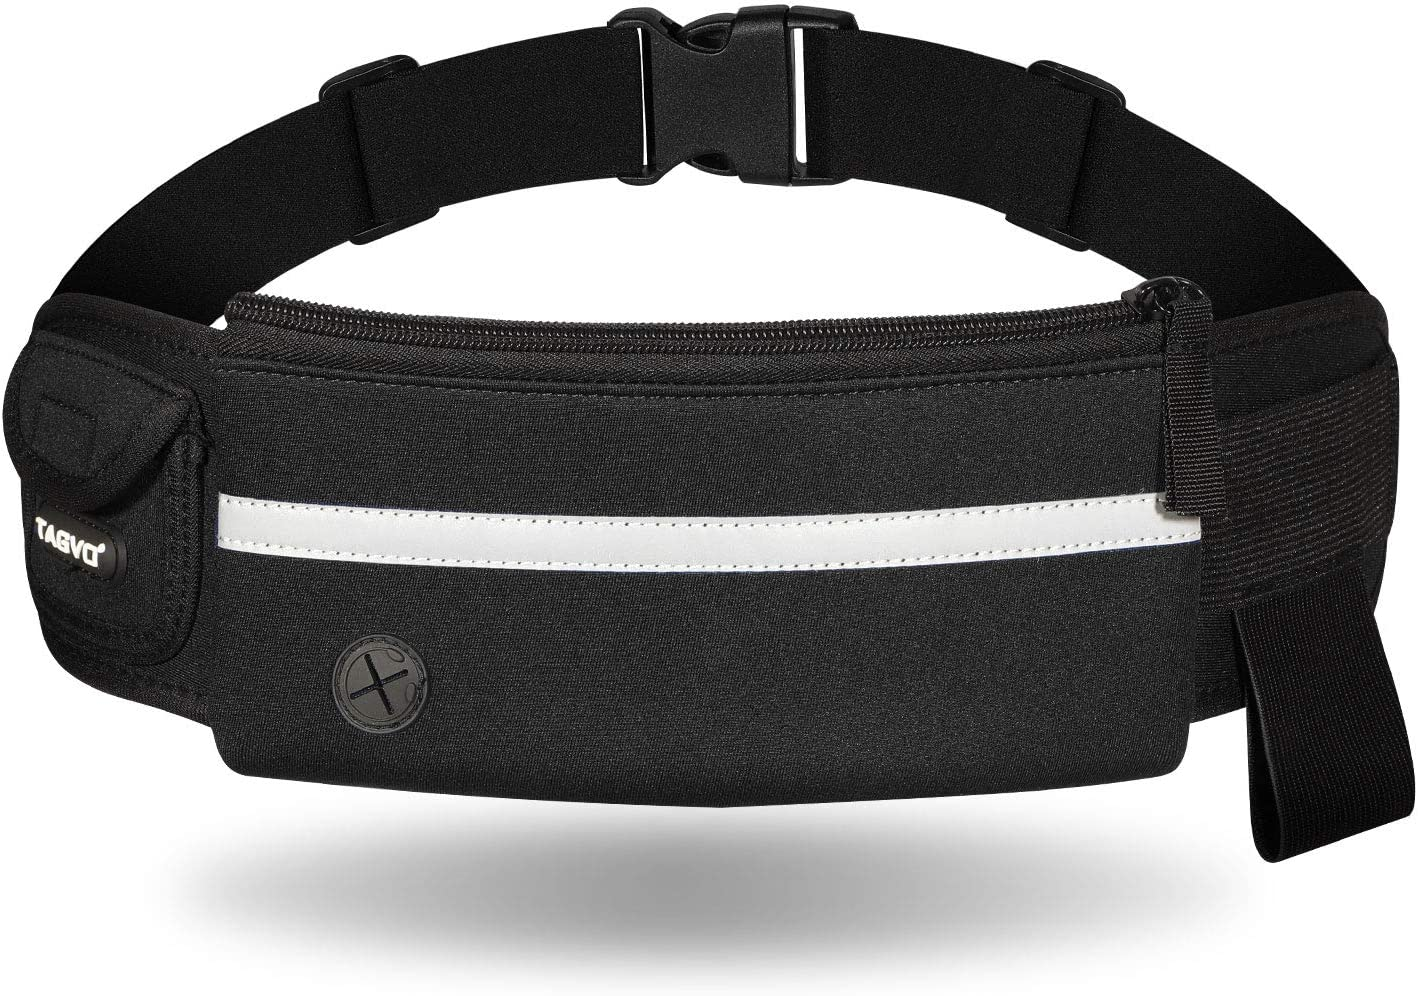 GYM TRAVEL SPORTS ACTIVE WAIST BELT FANNY PACK For Huawei nova 5T